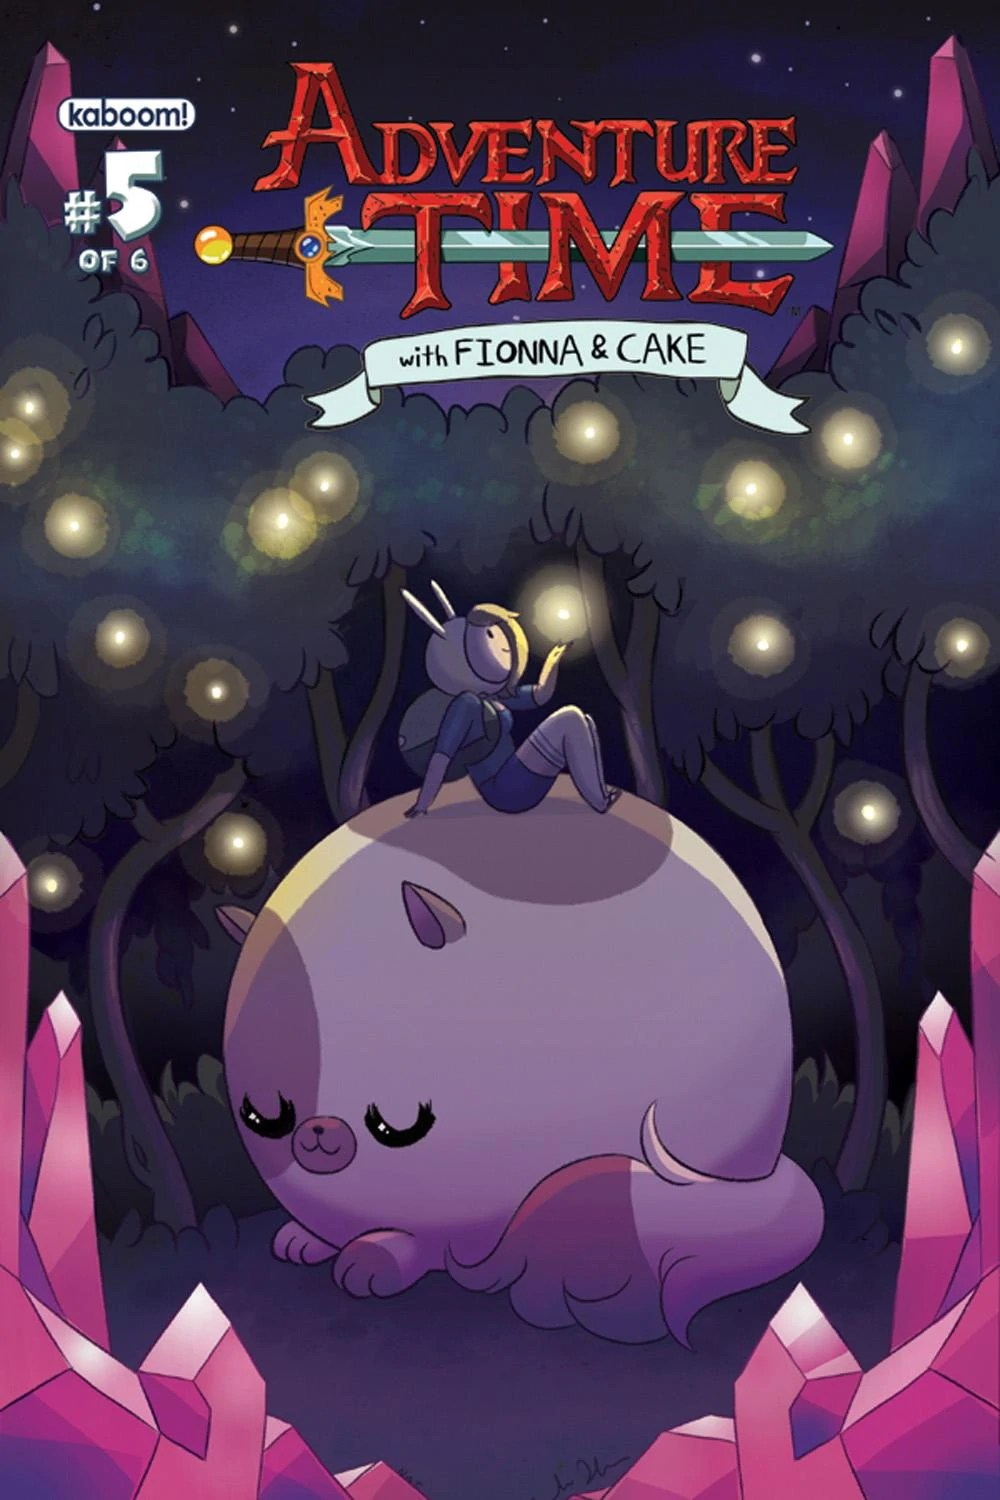 Finn Iphone X Wallpaper Adventure Time With Fionna And Cake Issue 5 Adventure